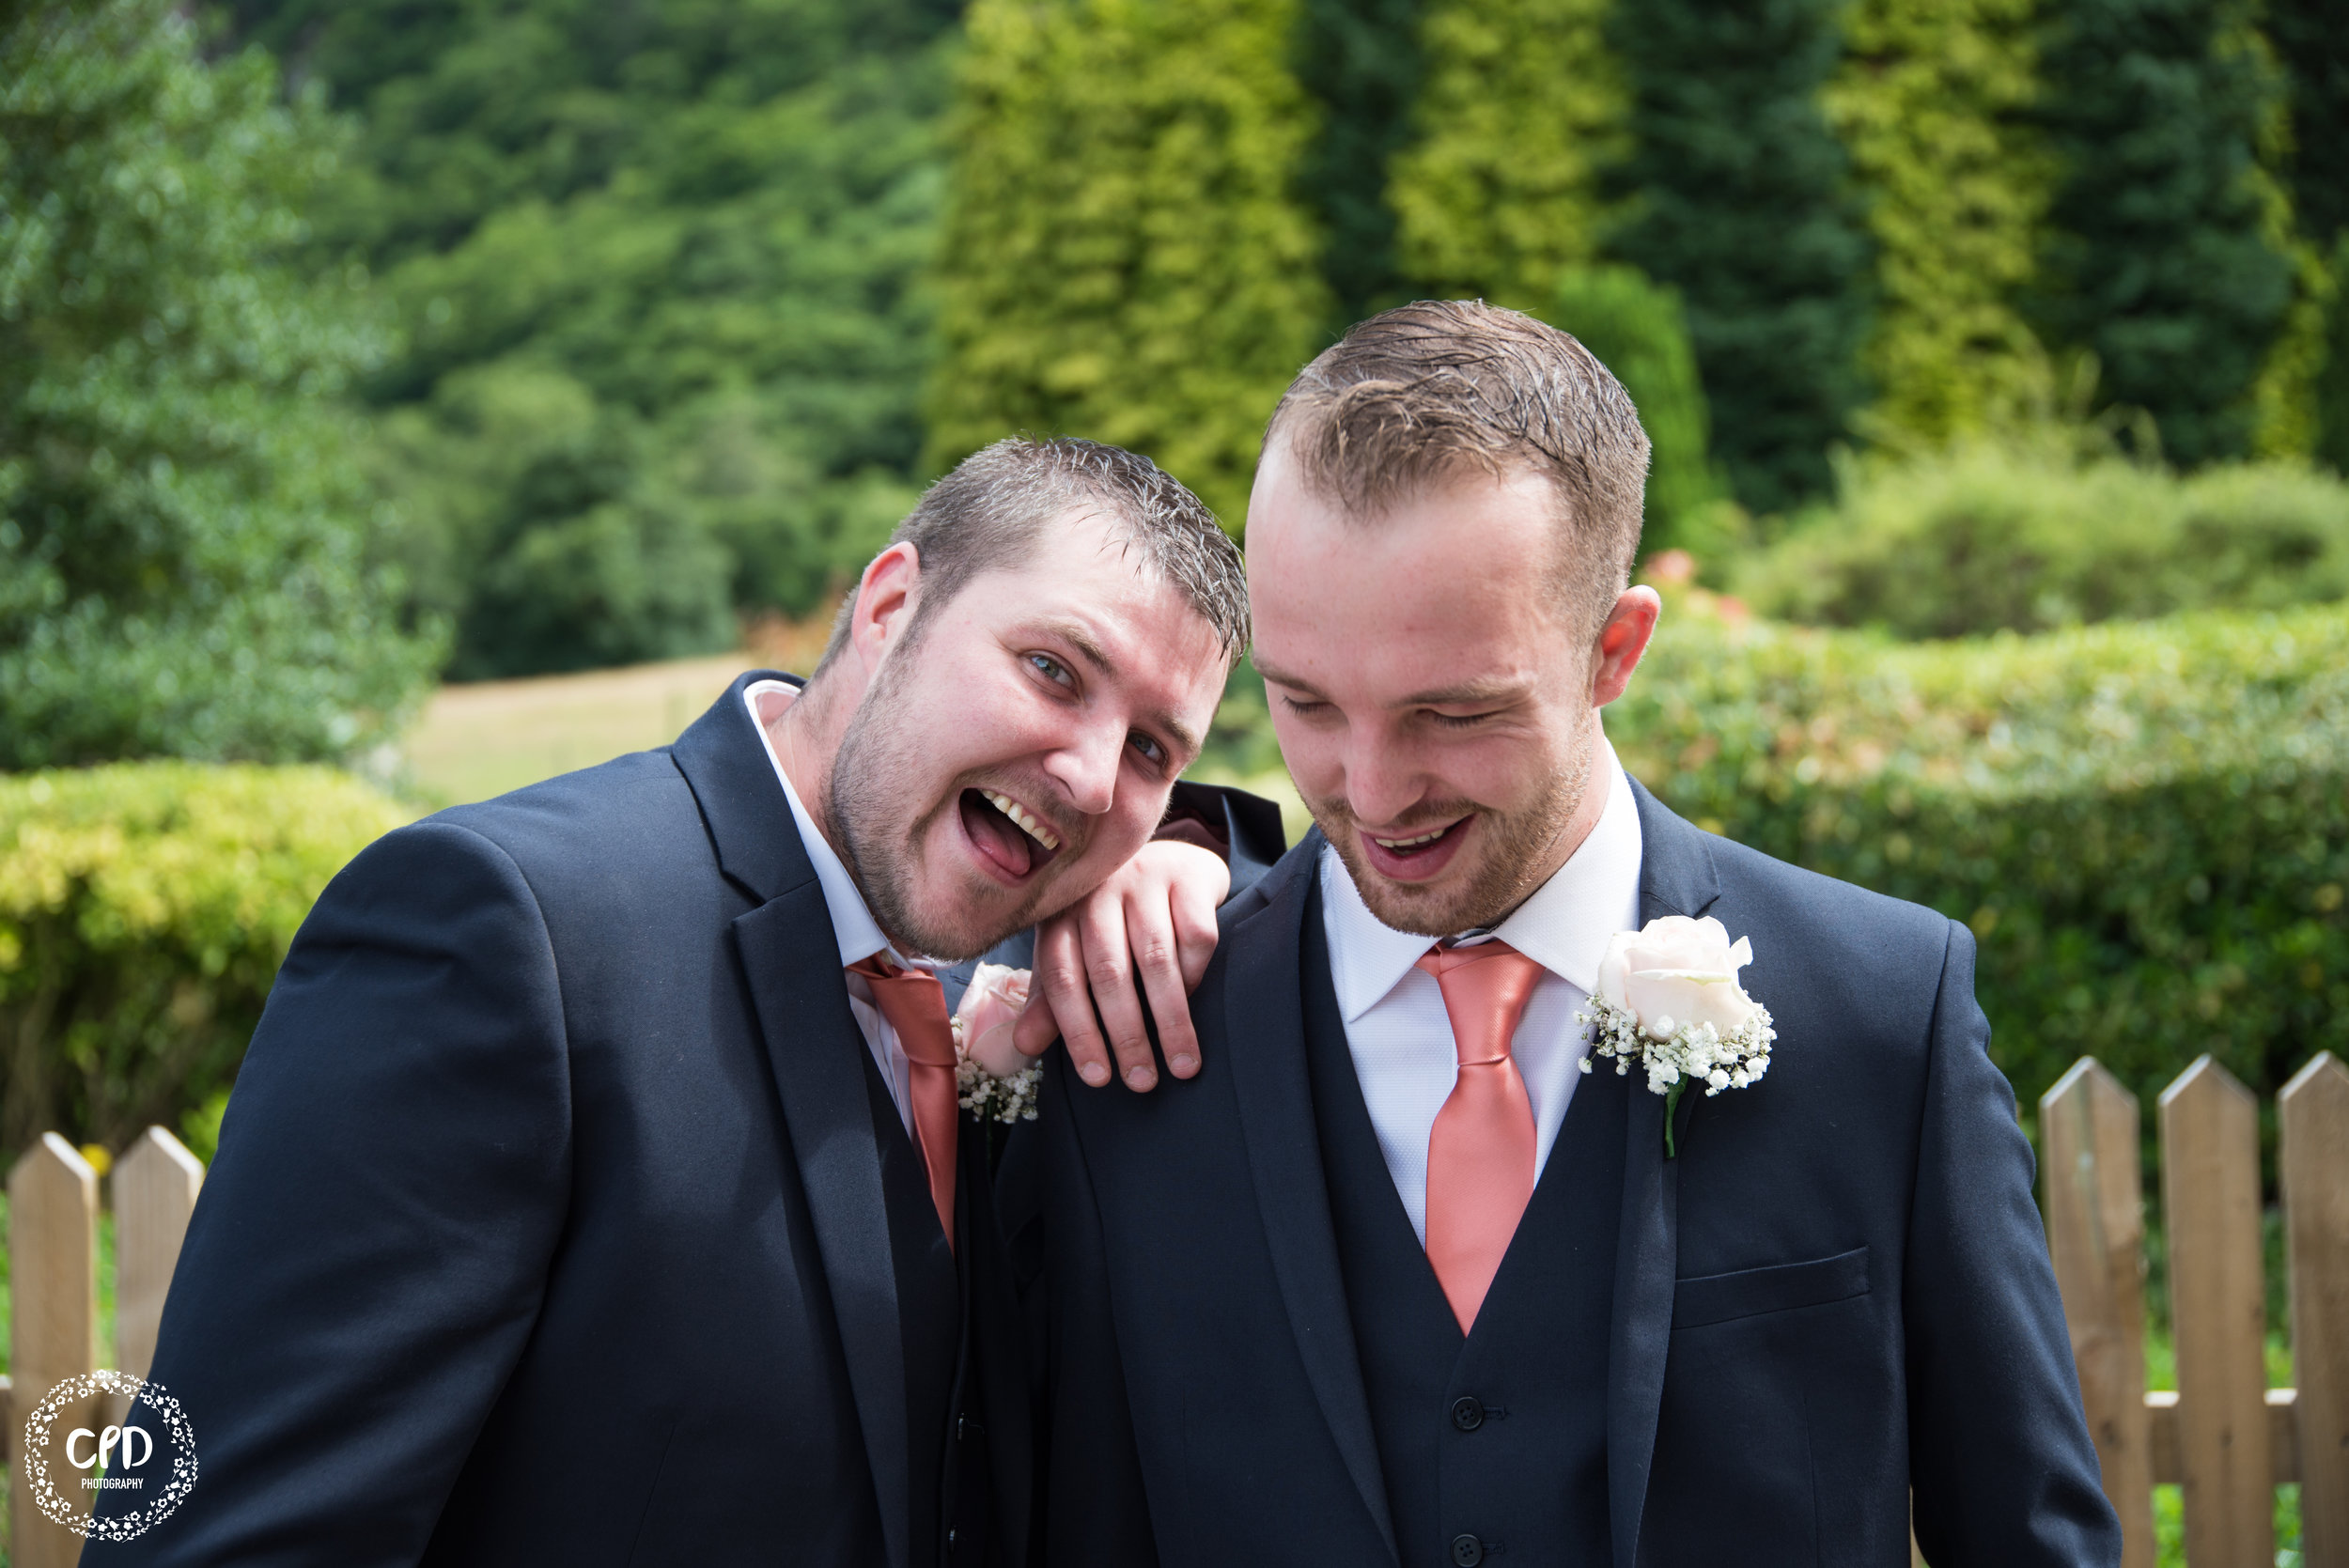 Groom and Best Man goofing around